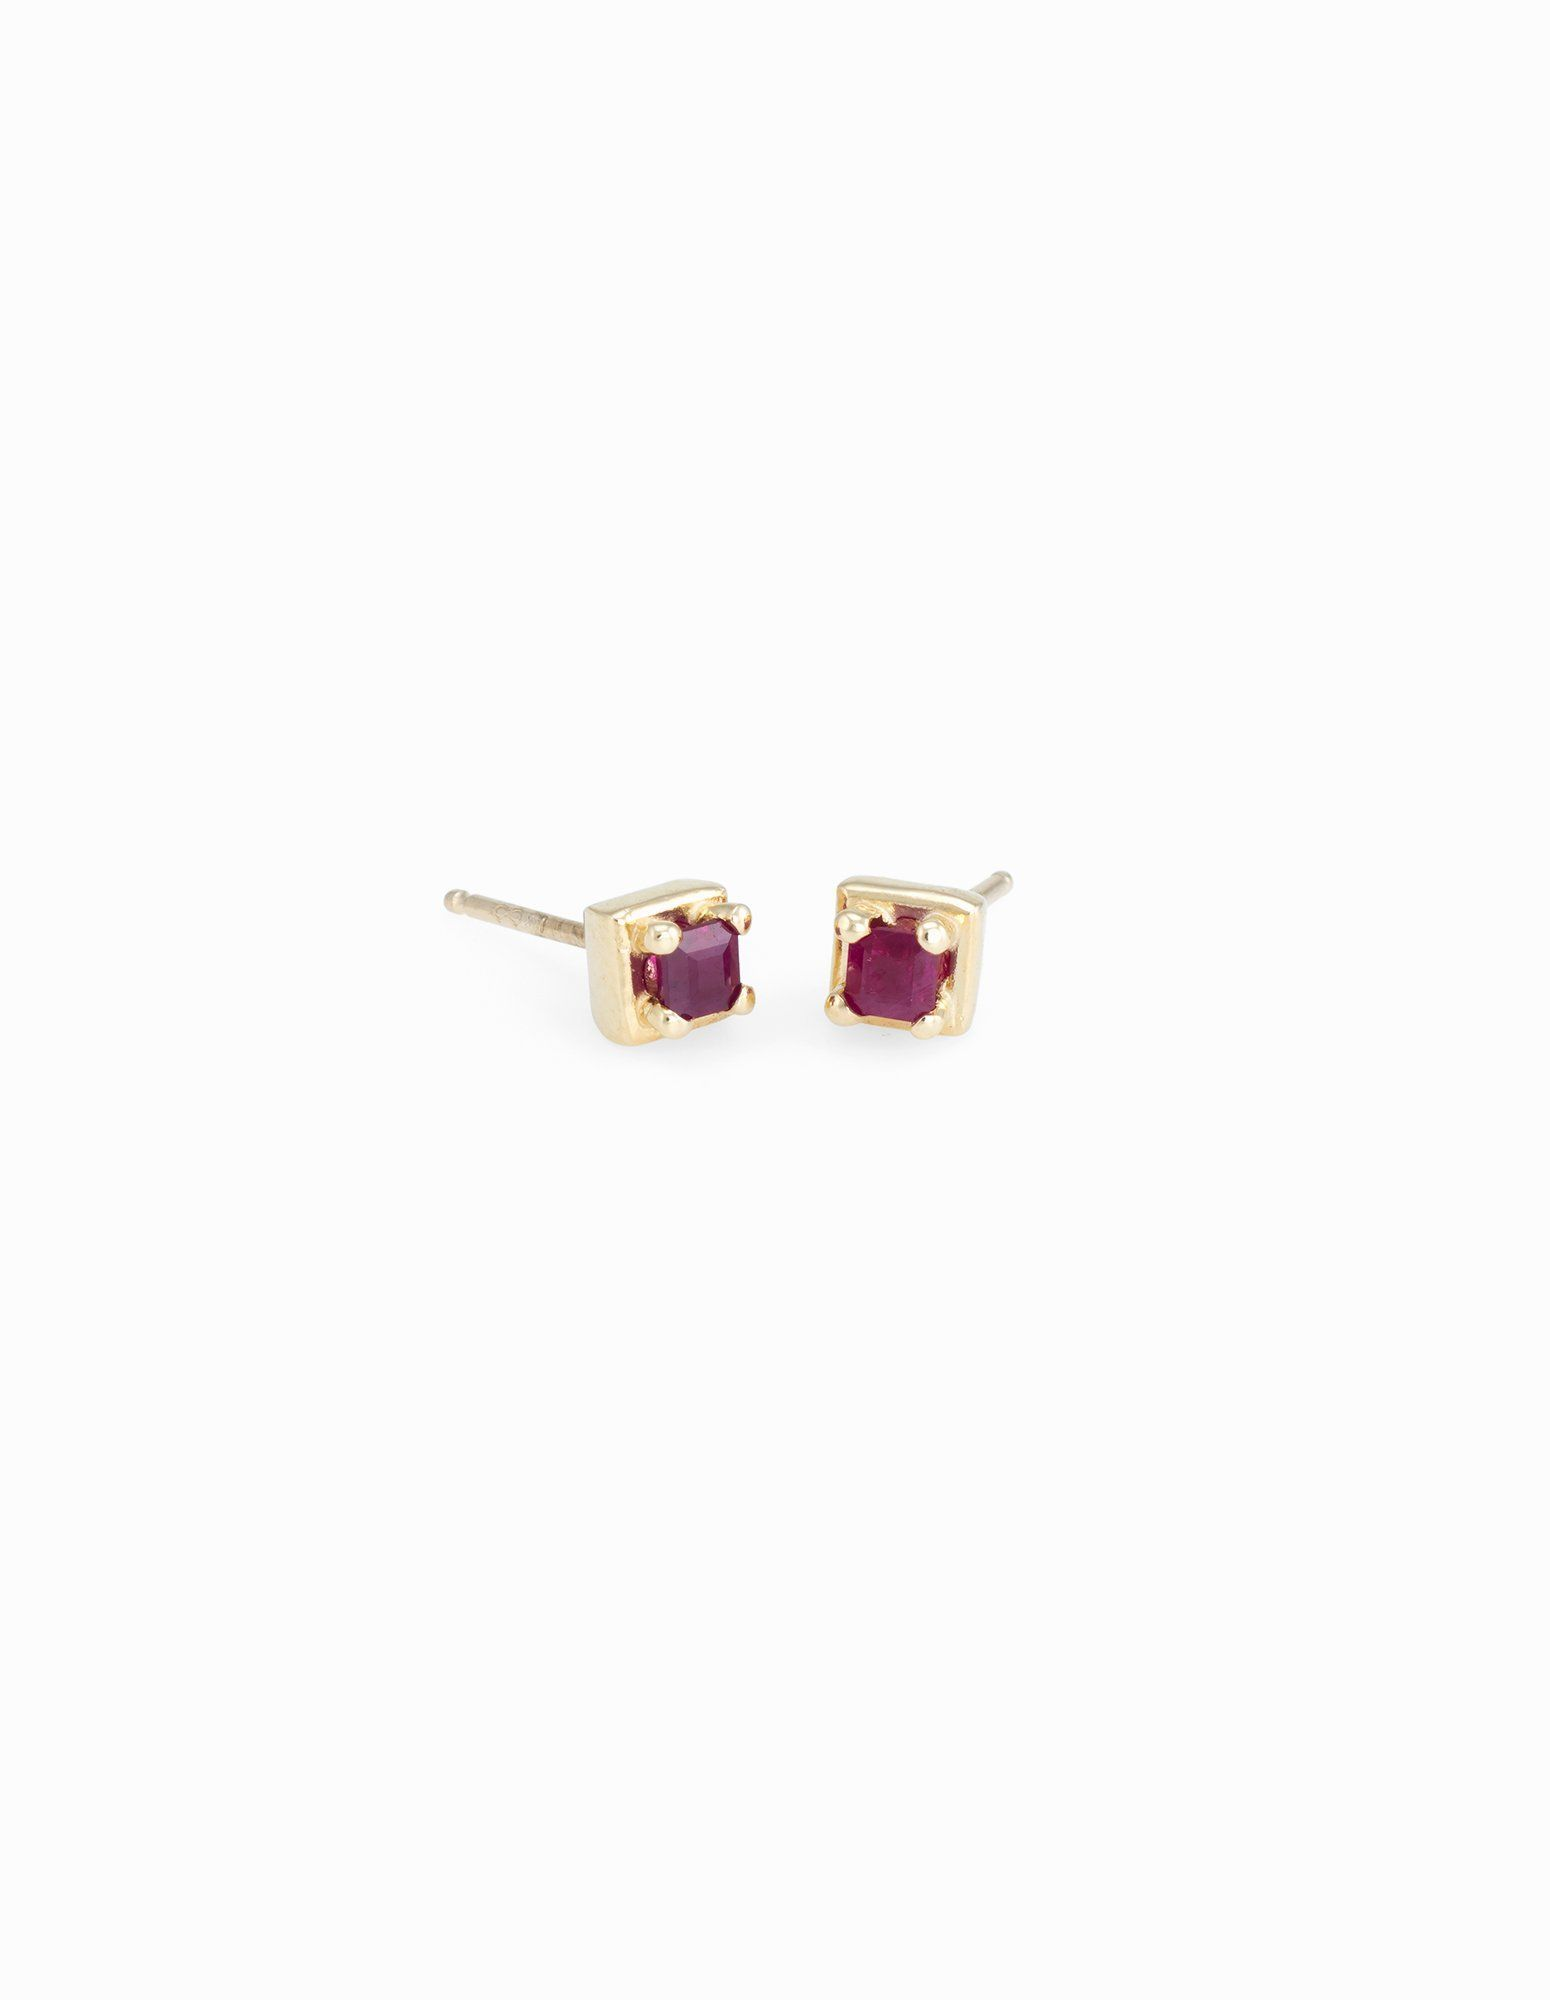 8be072486 Ruby square studs framed in 14k gold. Measure approximately: 4.5 x 4.5 mm  Handmade in the USA.